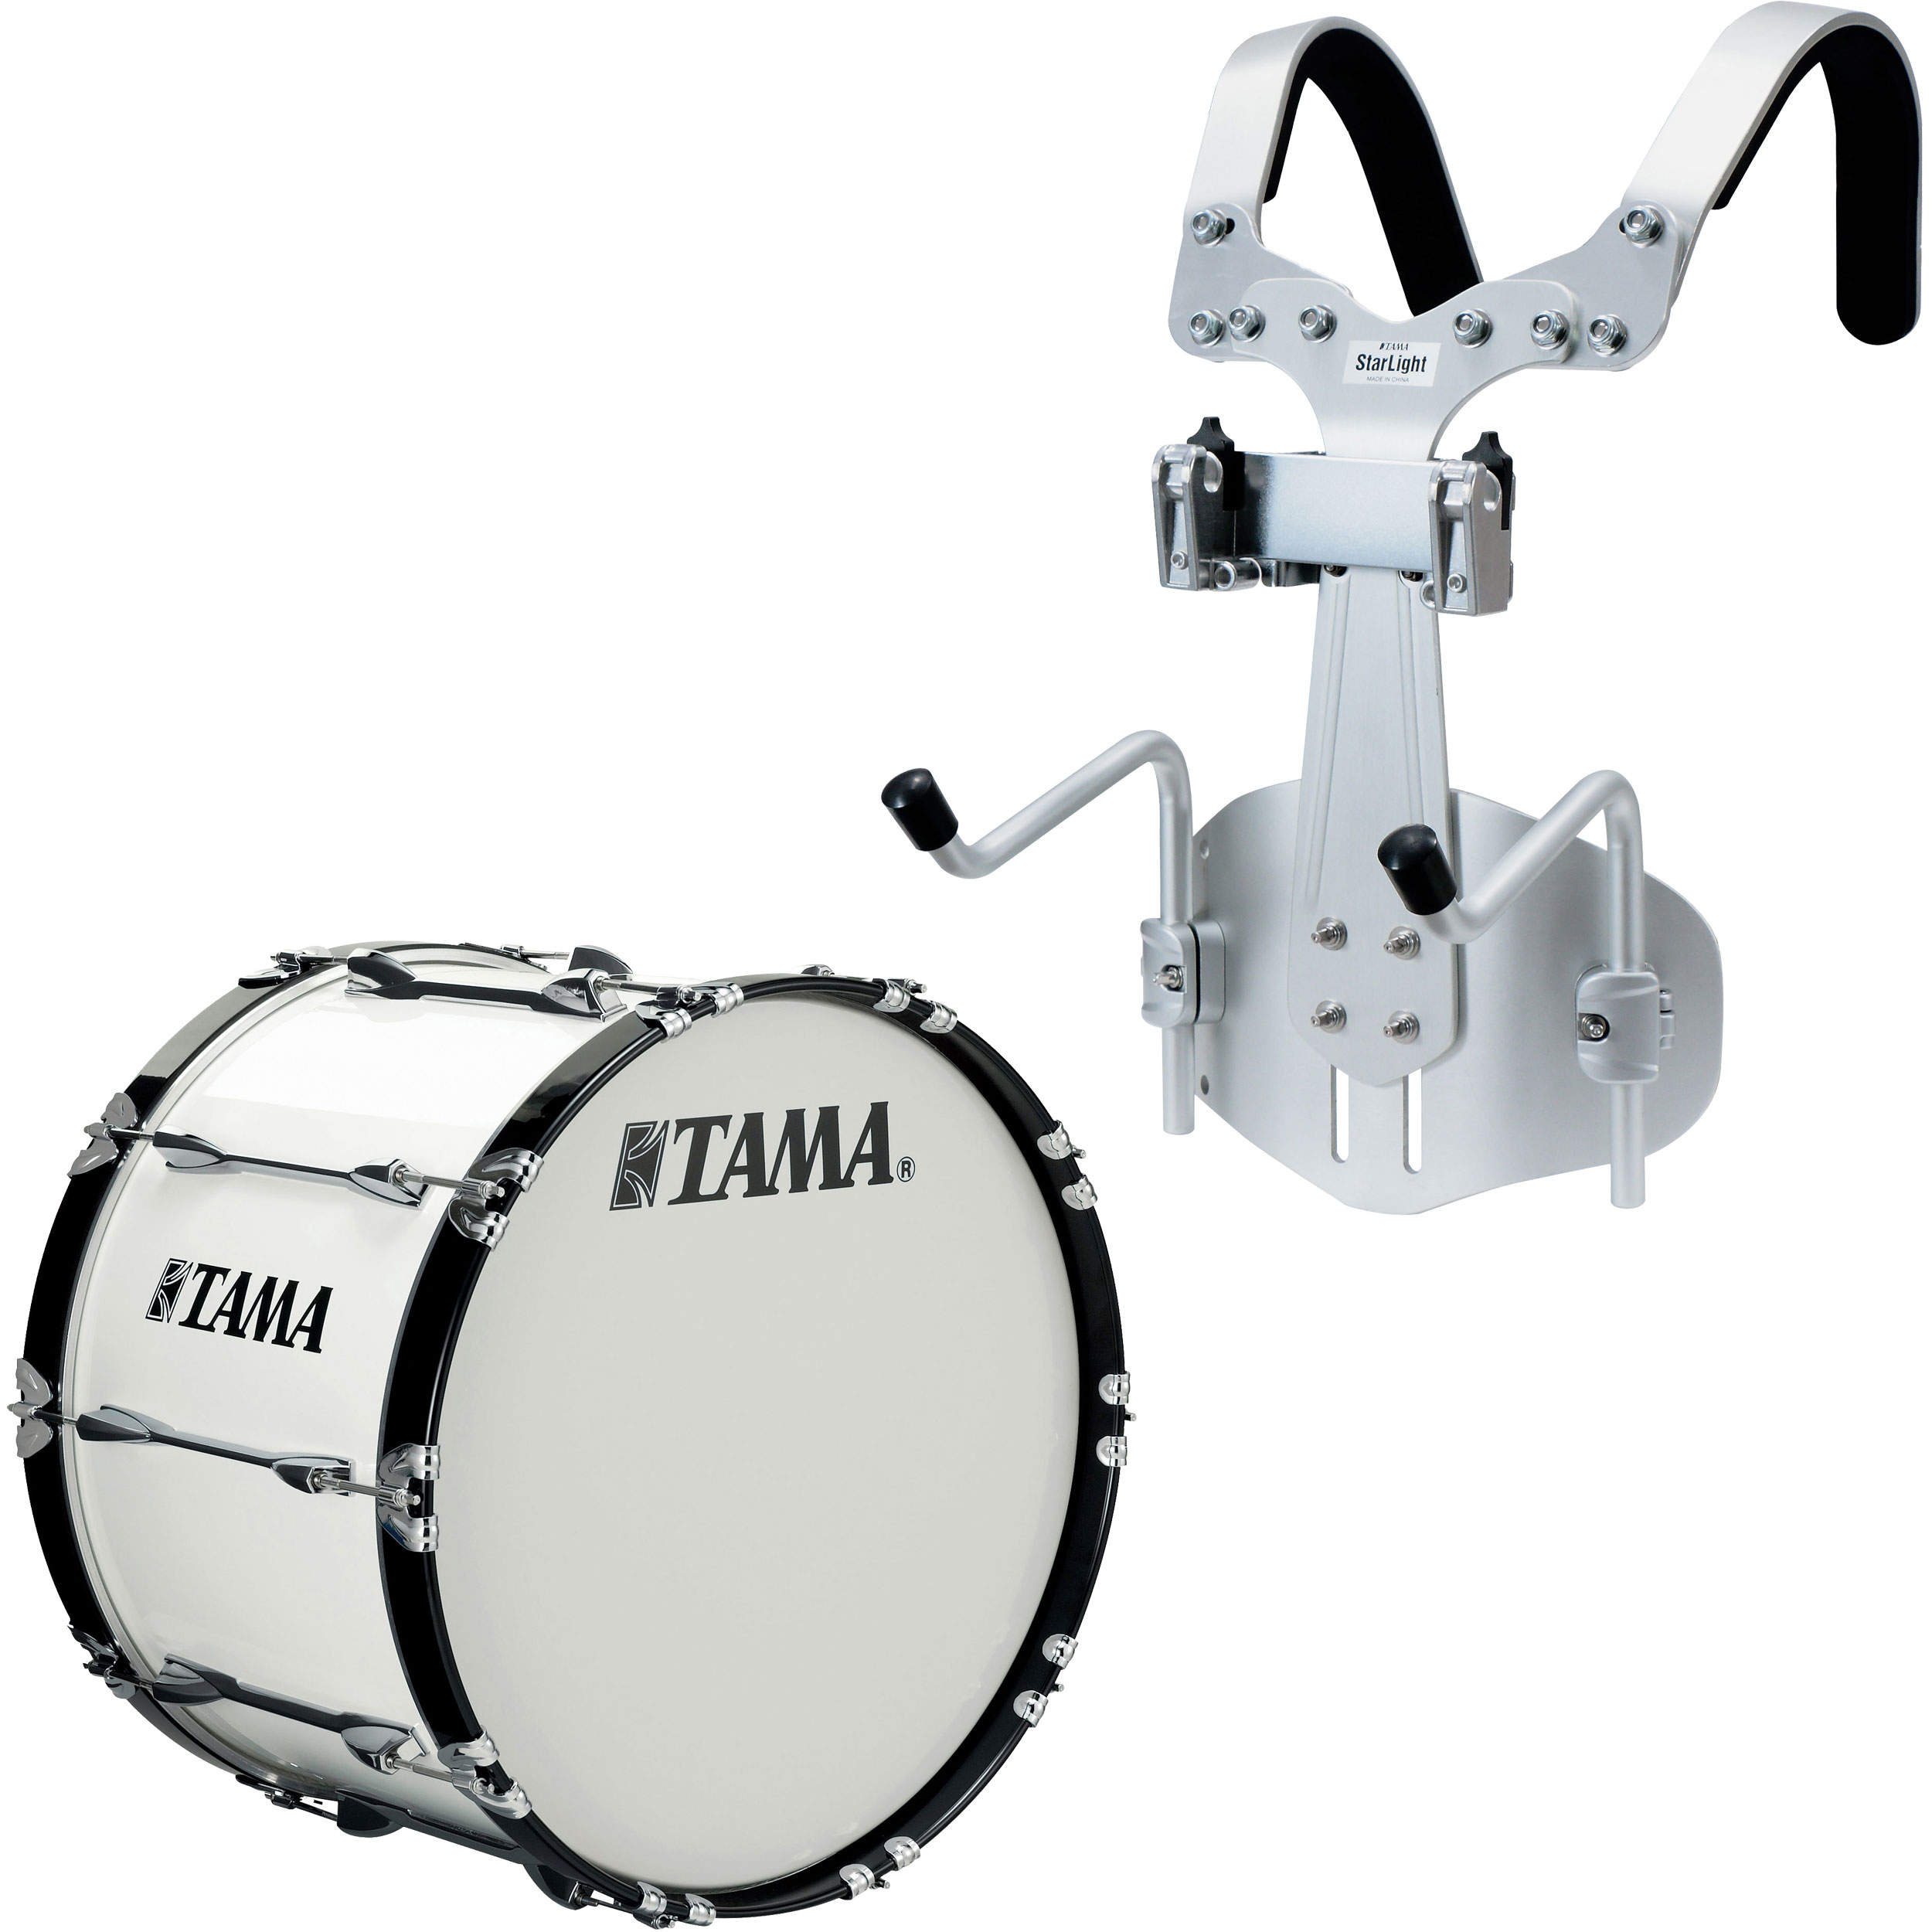 "Tama 18"" StarLight Marching Bass Drum in Sugar White Wrap with Carrier"